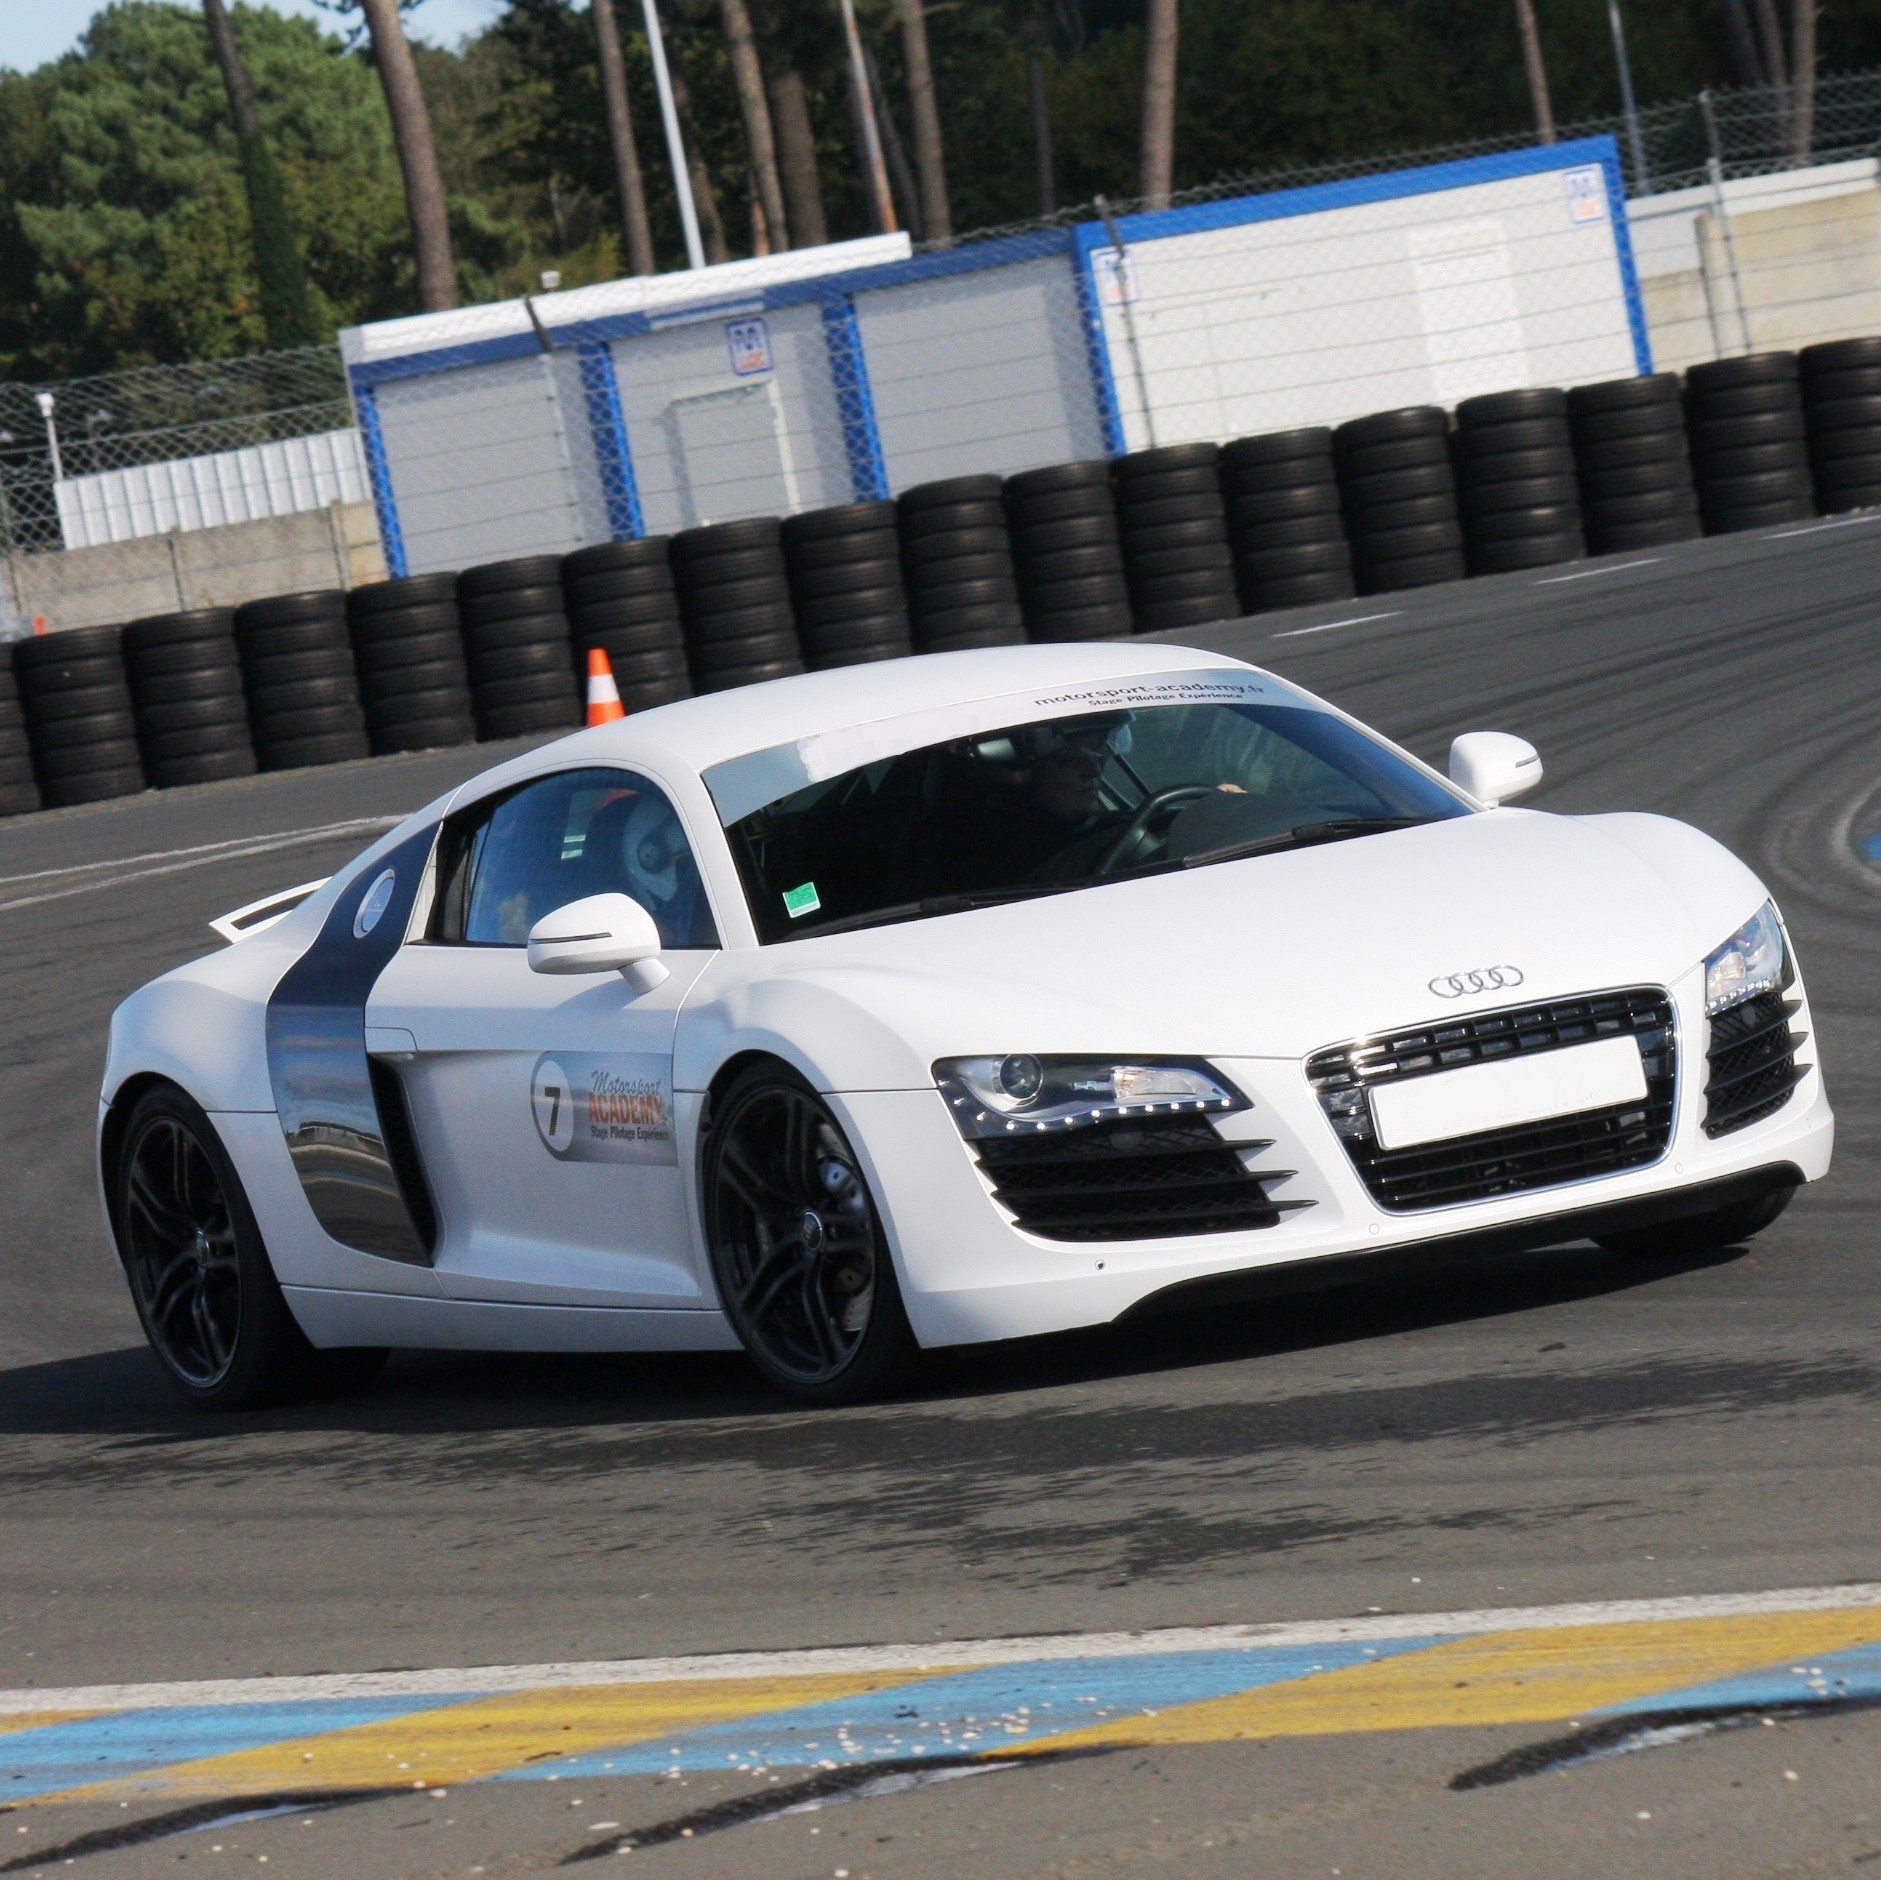 stage de pilotage audi r8 le mans maison blanche. Black Bedroom Furniture Sets. Home Design Ideas